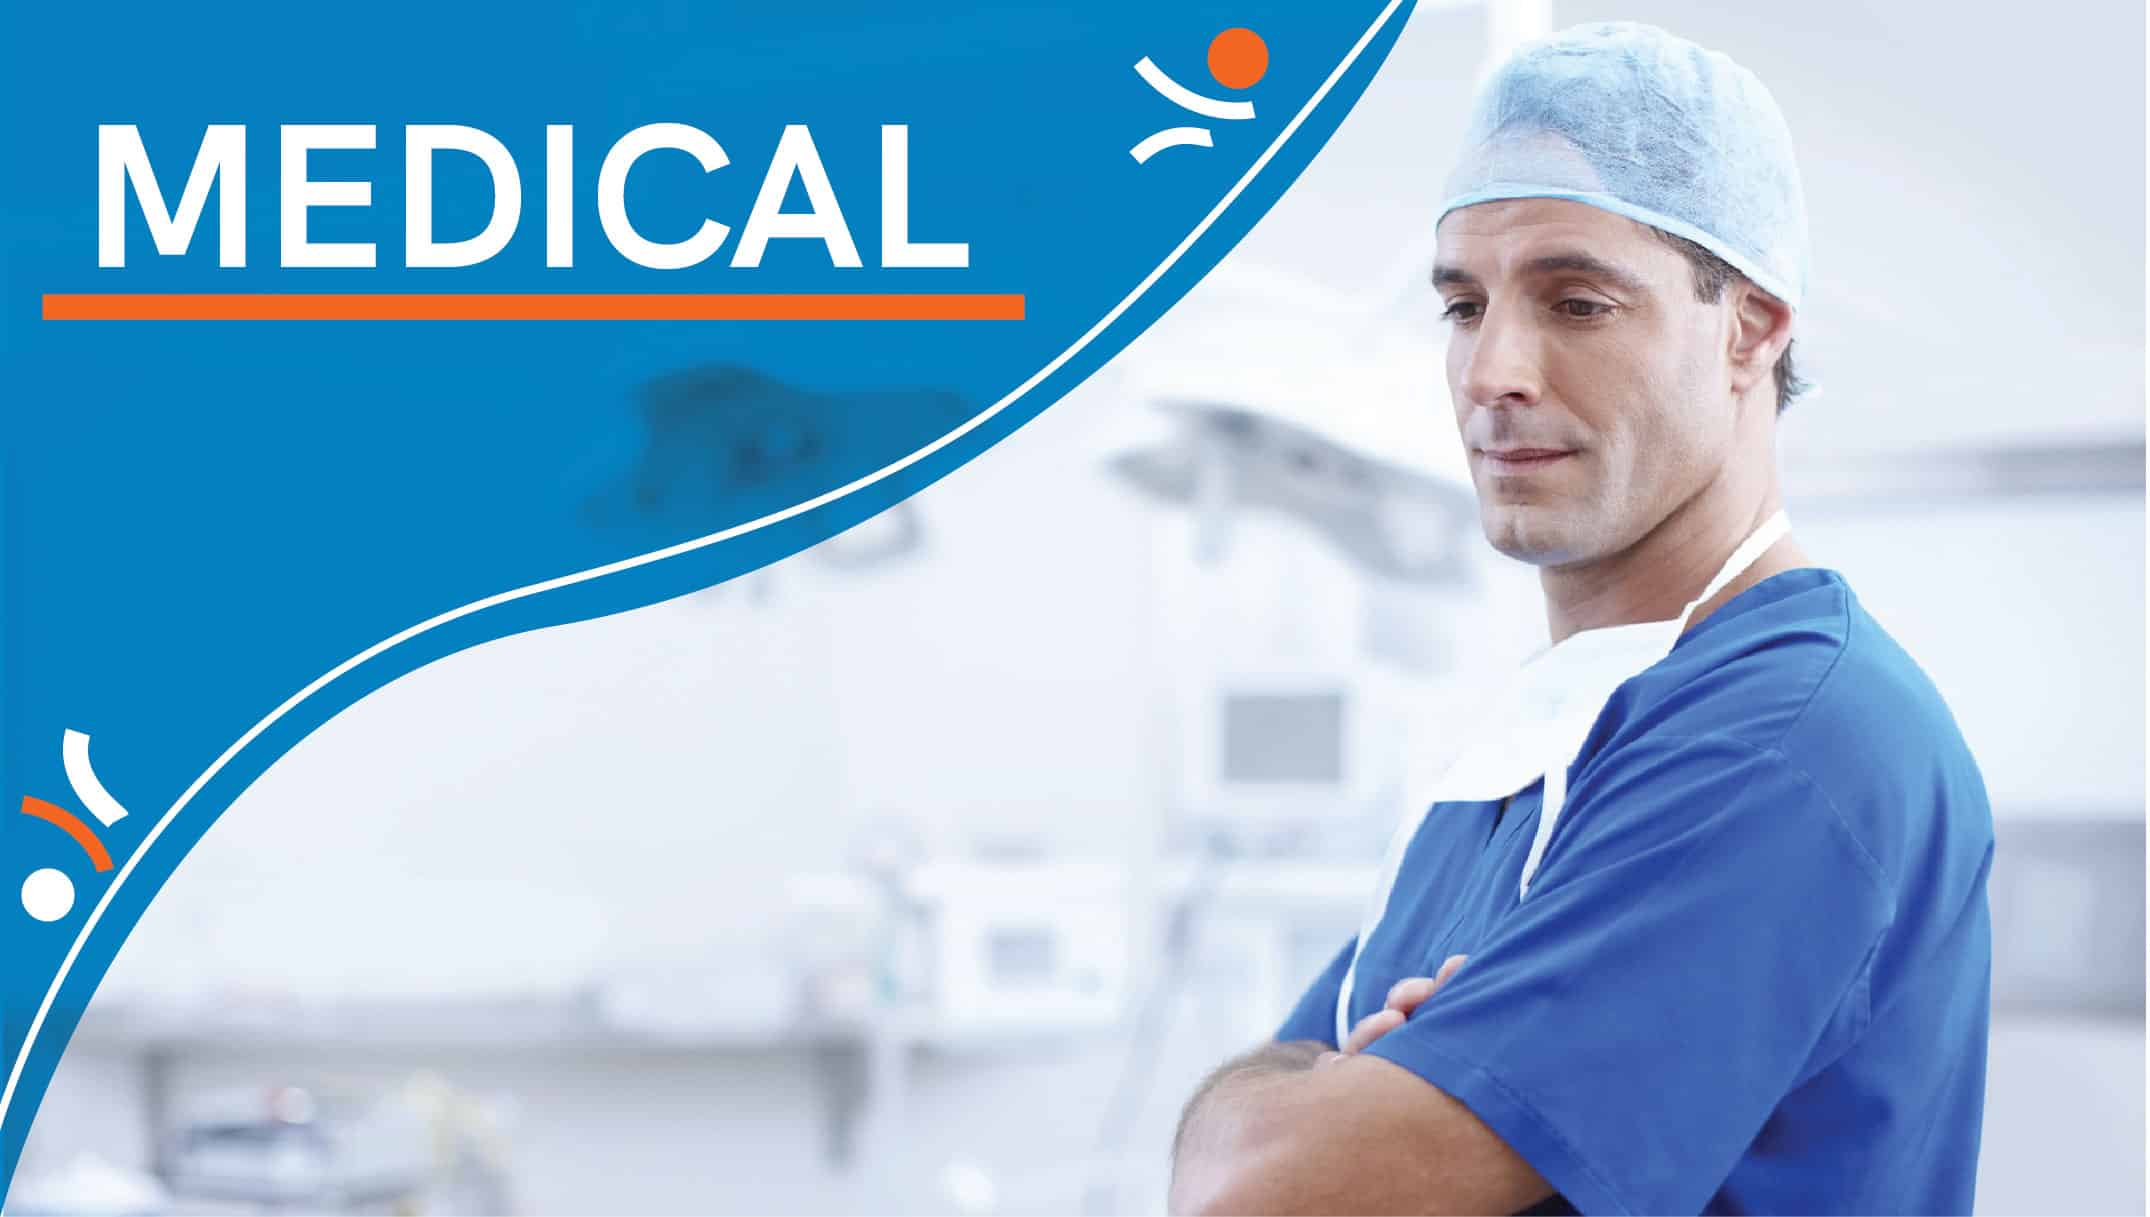 Ethic Adveritsing Agency industry vertical image for medical services advertising